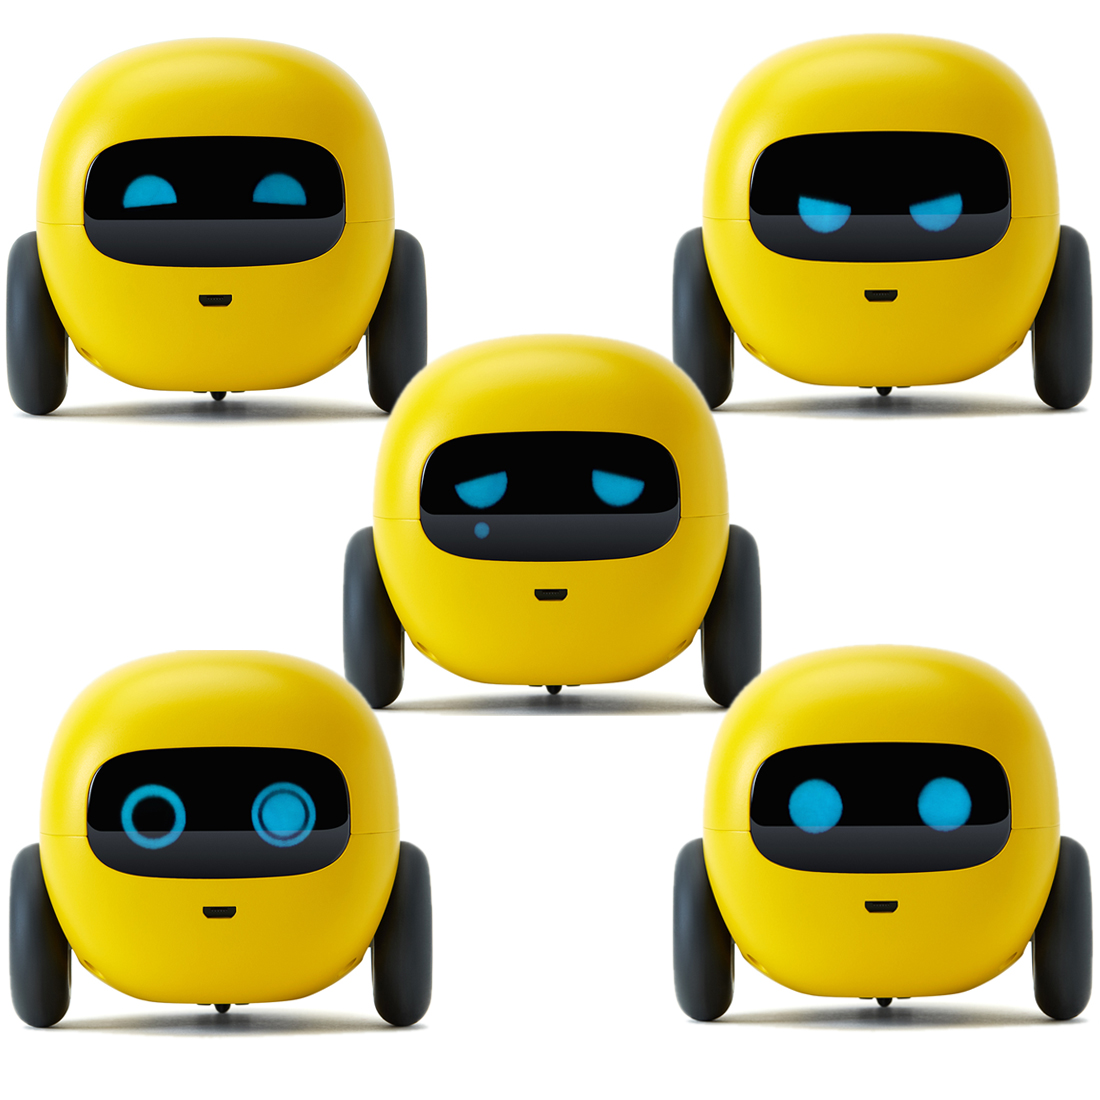 Programmable Toys United 2019 New Mangobot Visual No Screen Type Enlightenment Building Block Secretly Teaches Coding Steam Robot Advanced Edition Extremely Efficient In Preserving Heat Toys & Hobbies